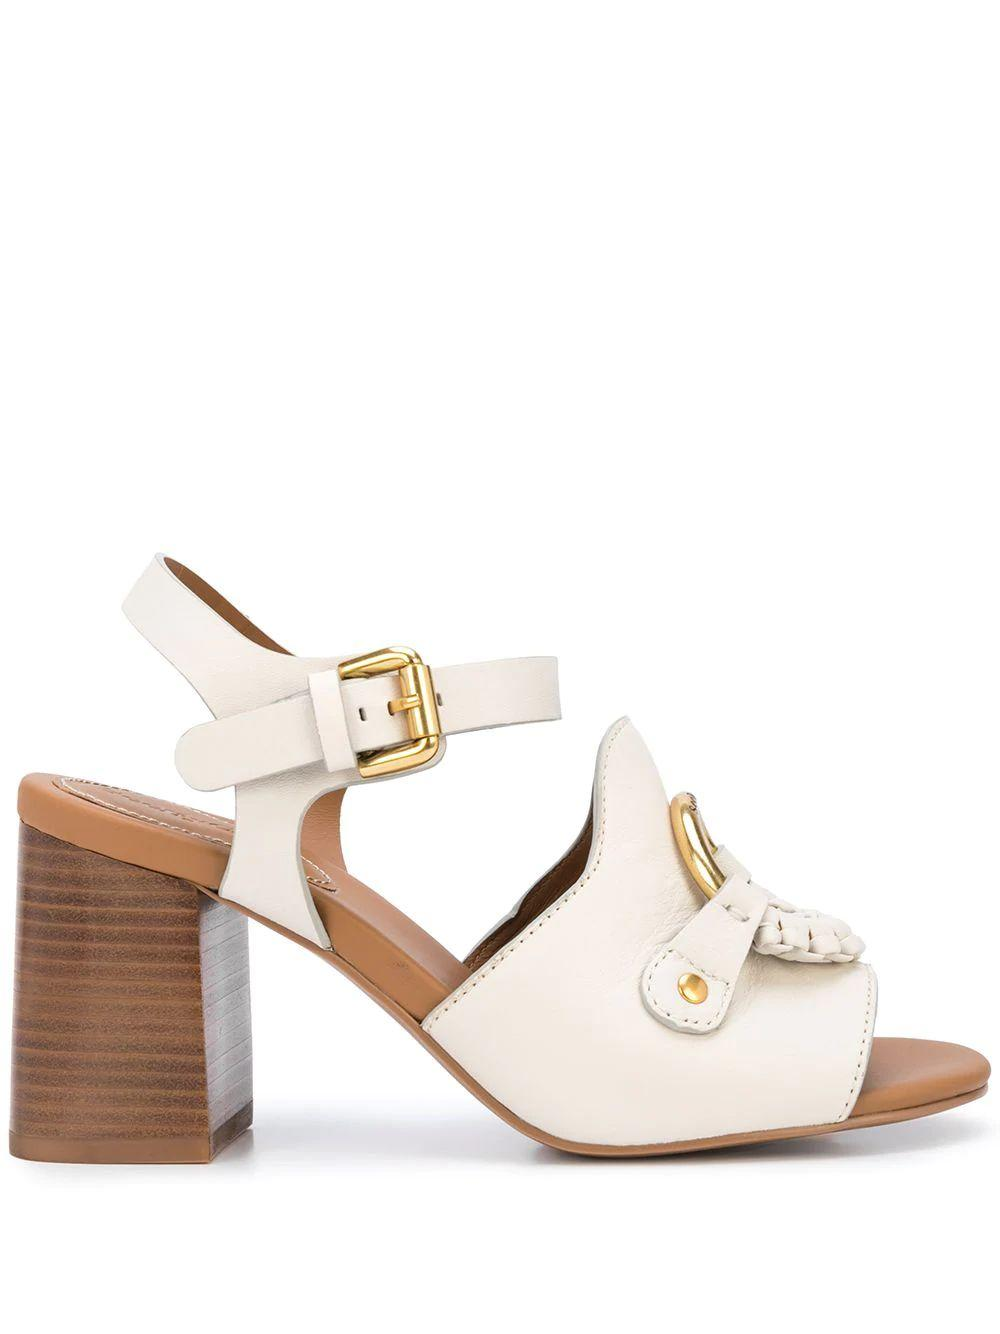 Leather Ankle Strap Sandal With Block Heel Item # SB34061A